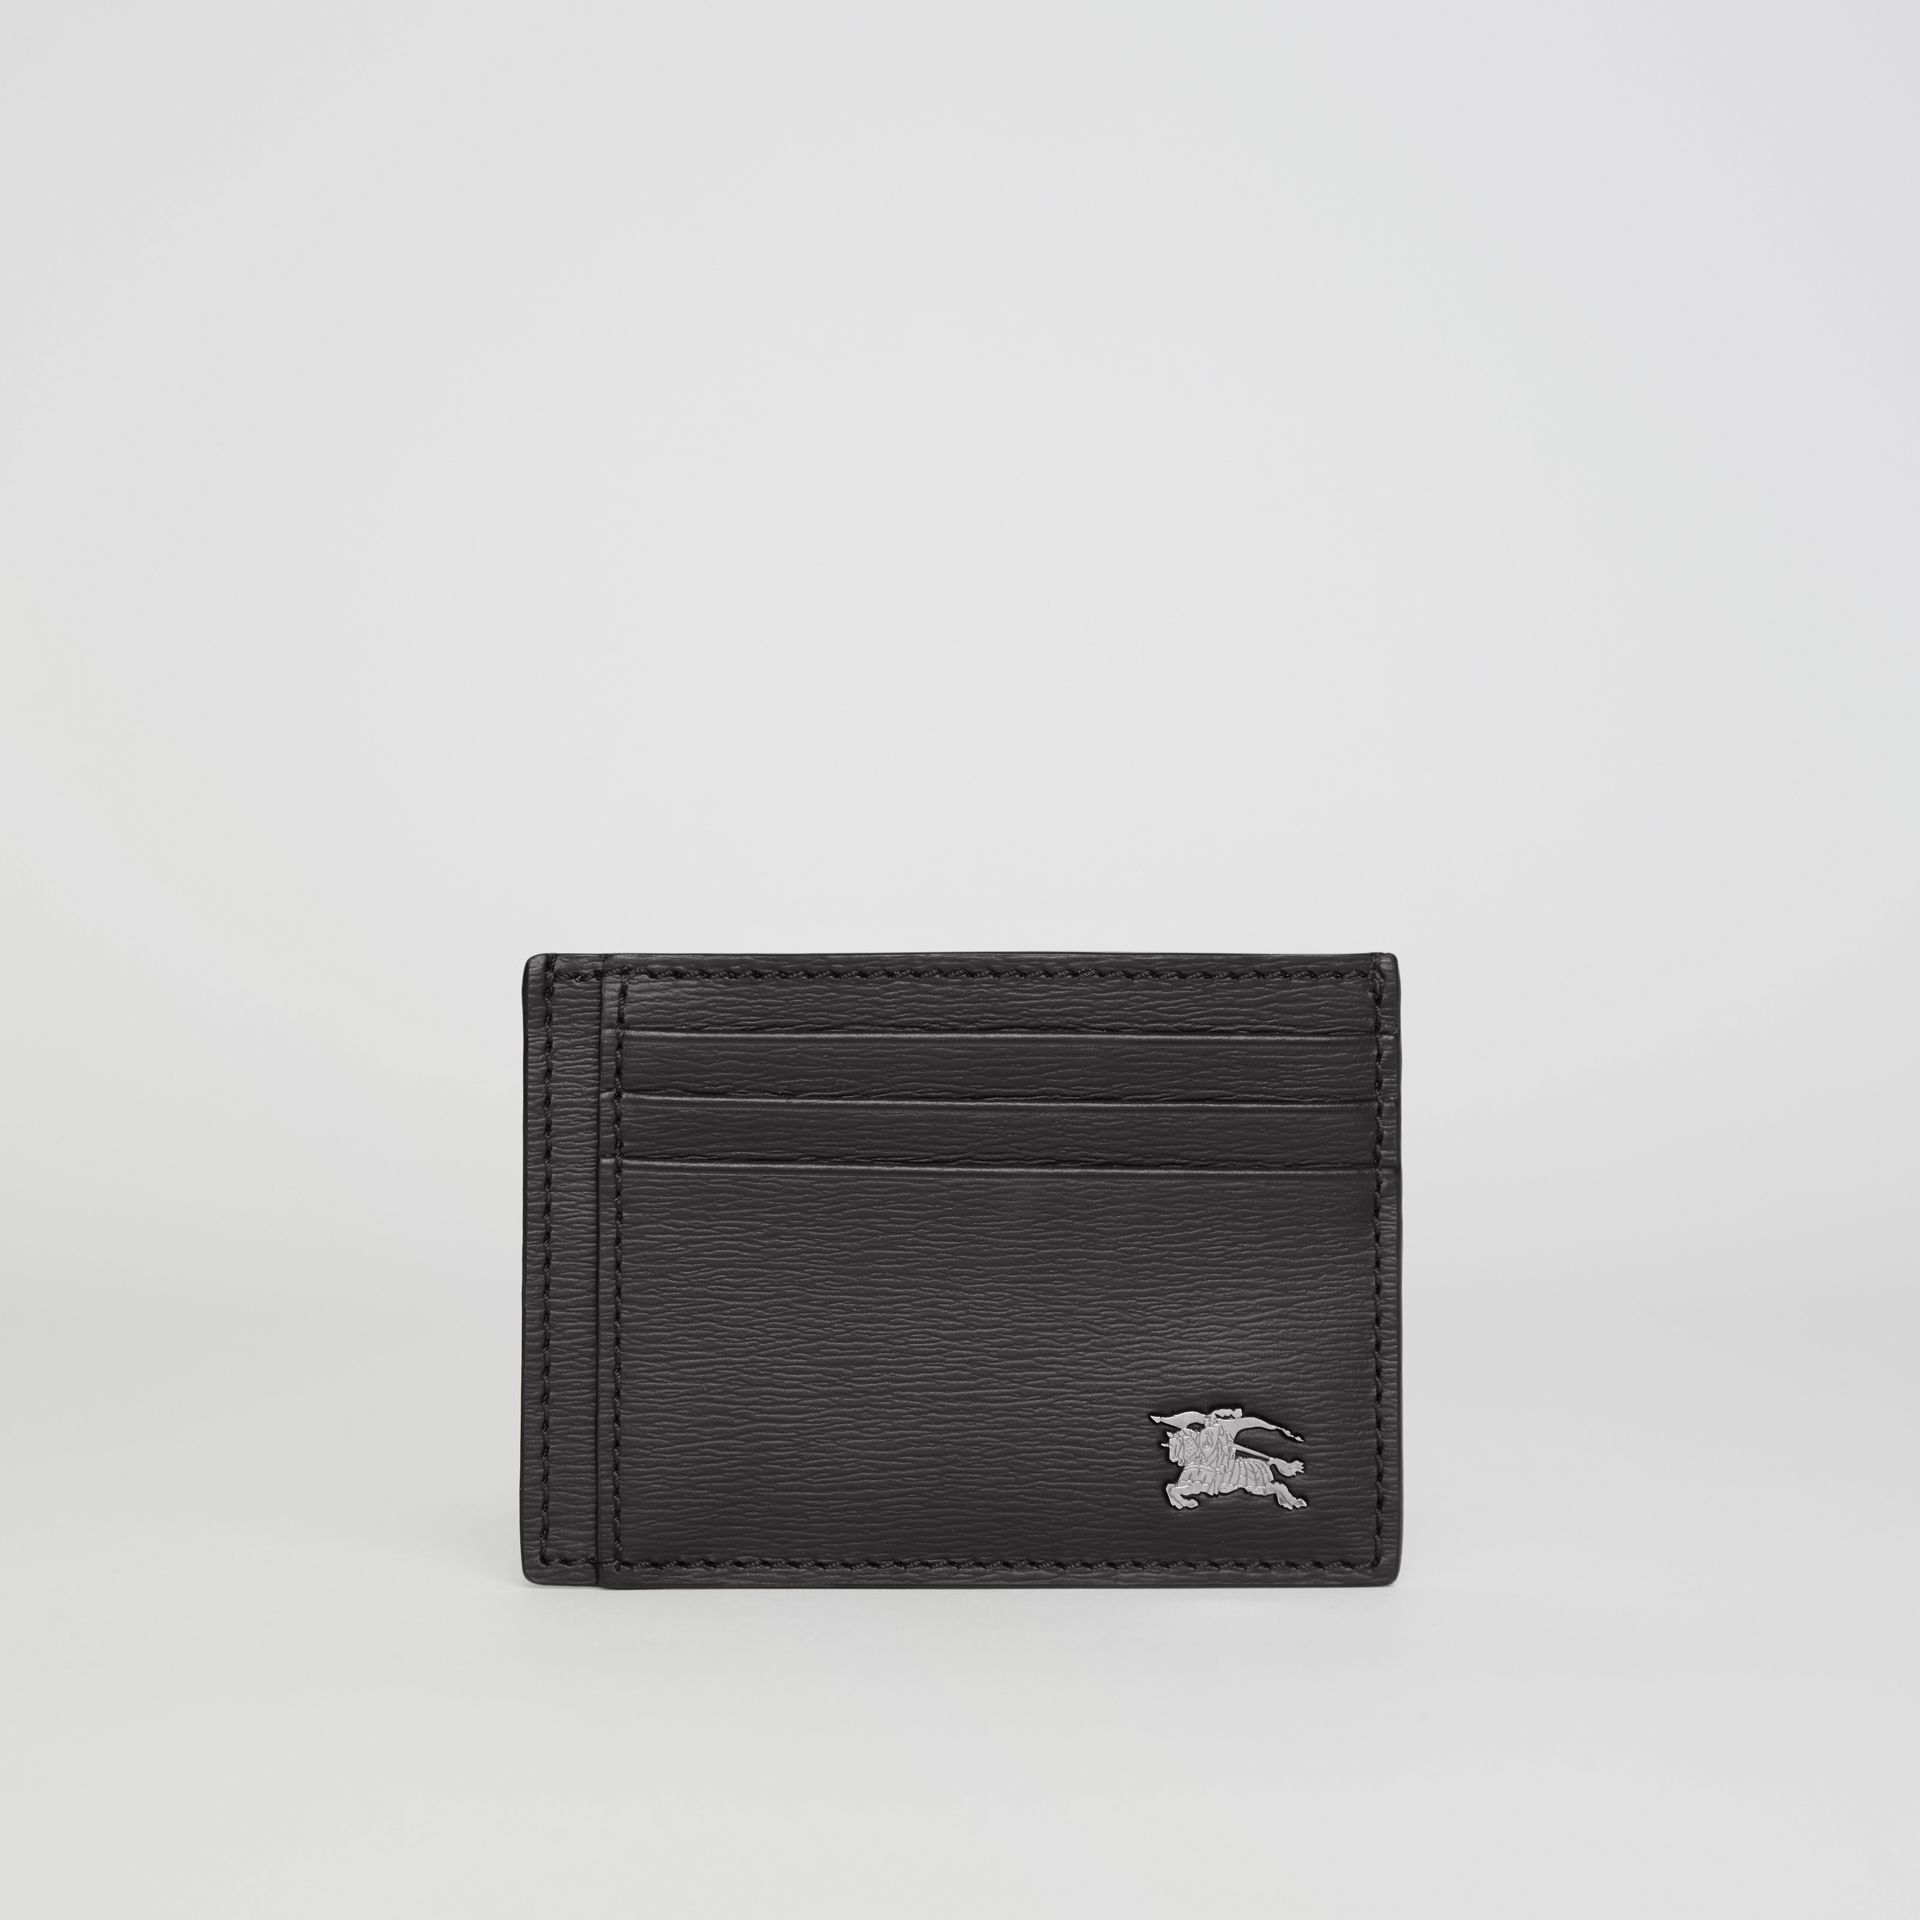 London Leather Card Case in Black - Men | Burberry - gallery image 5